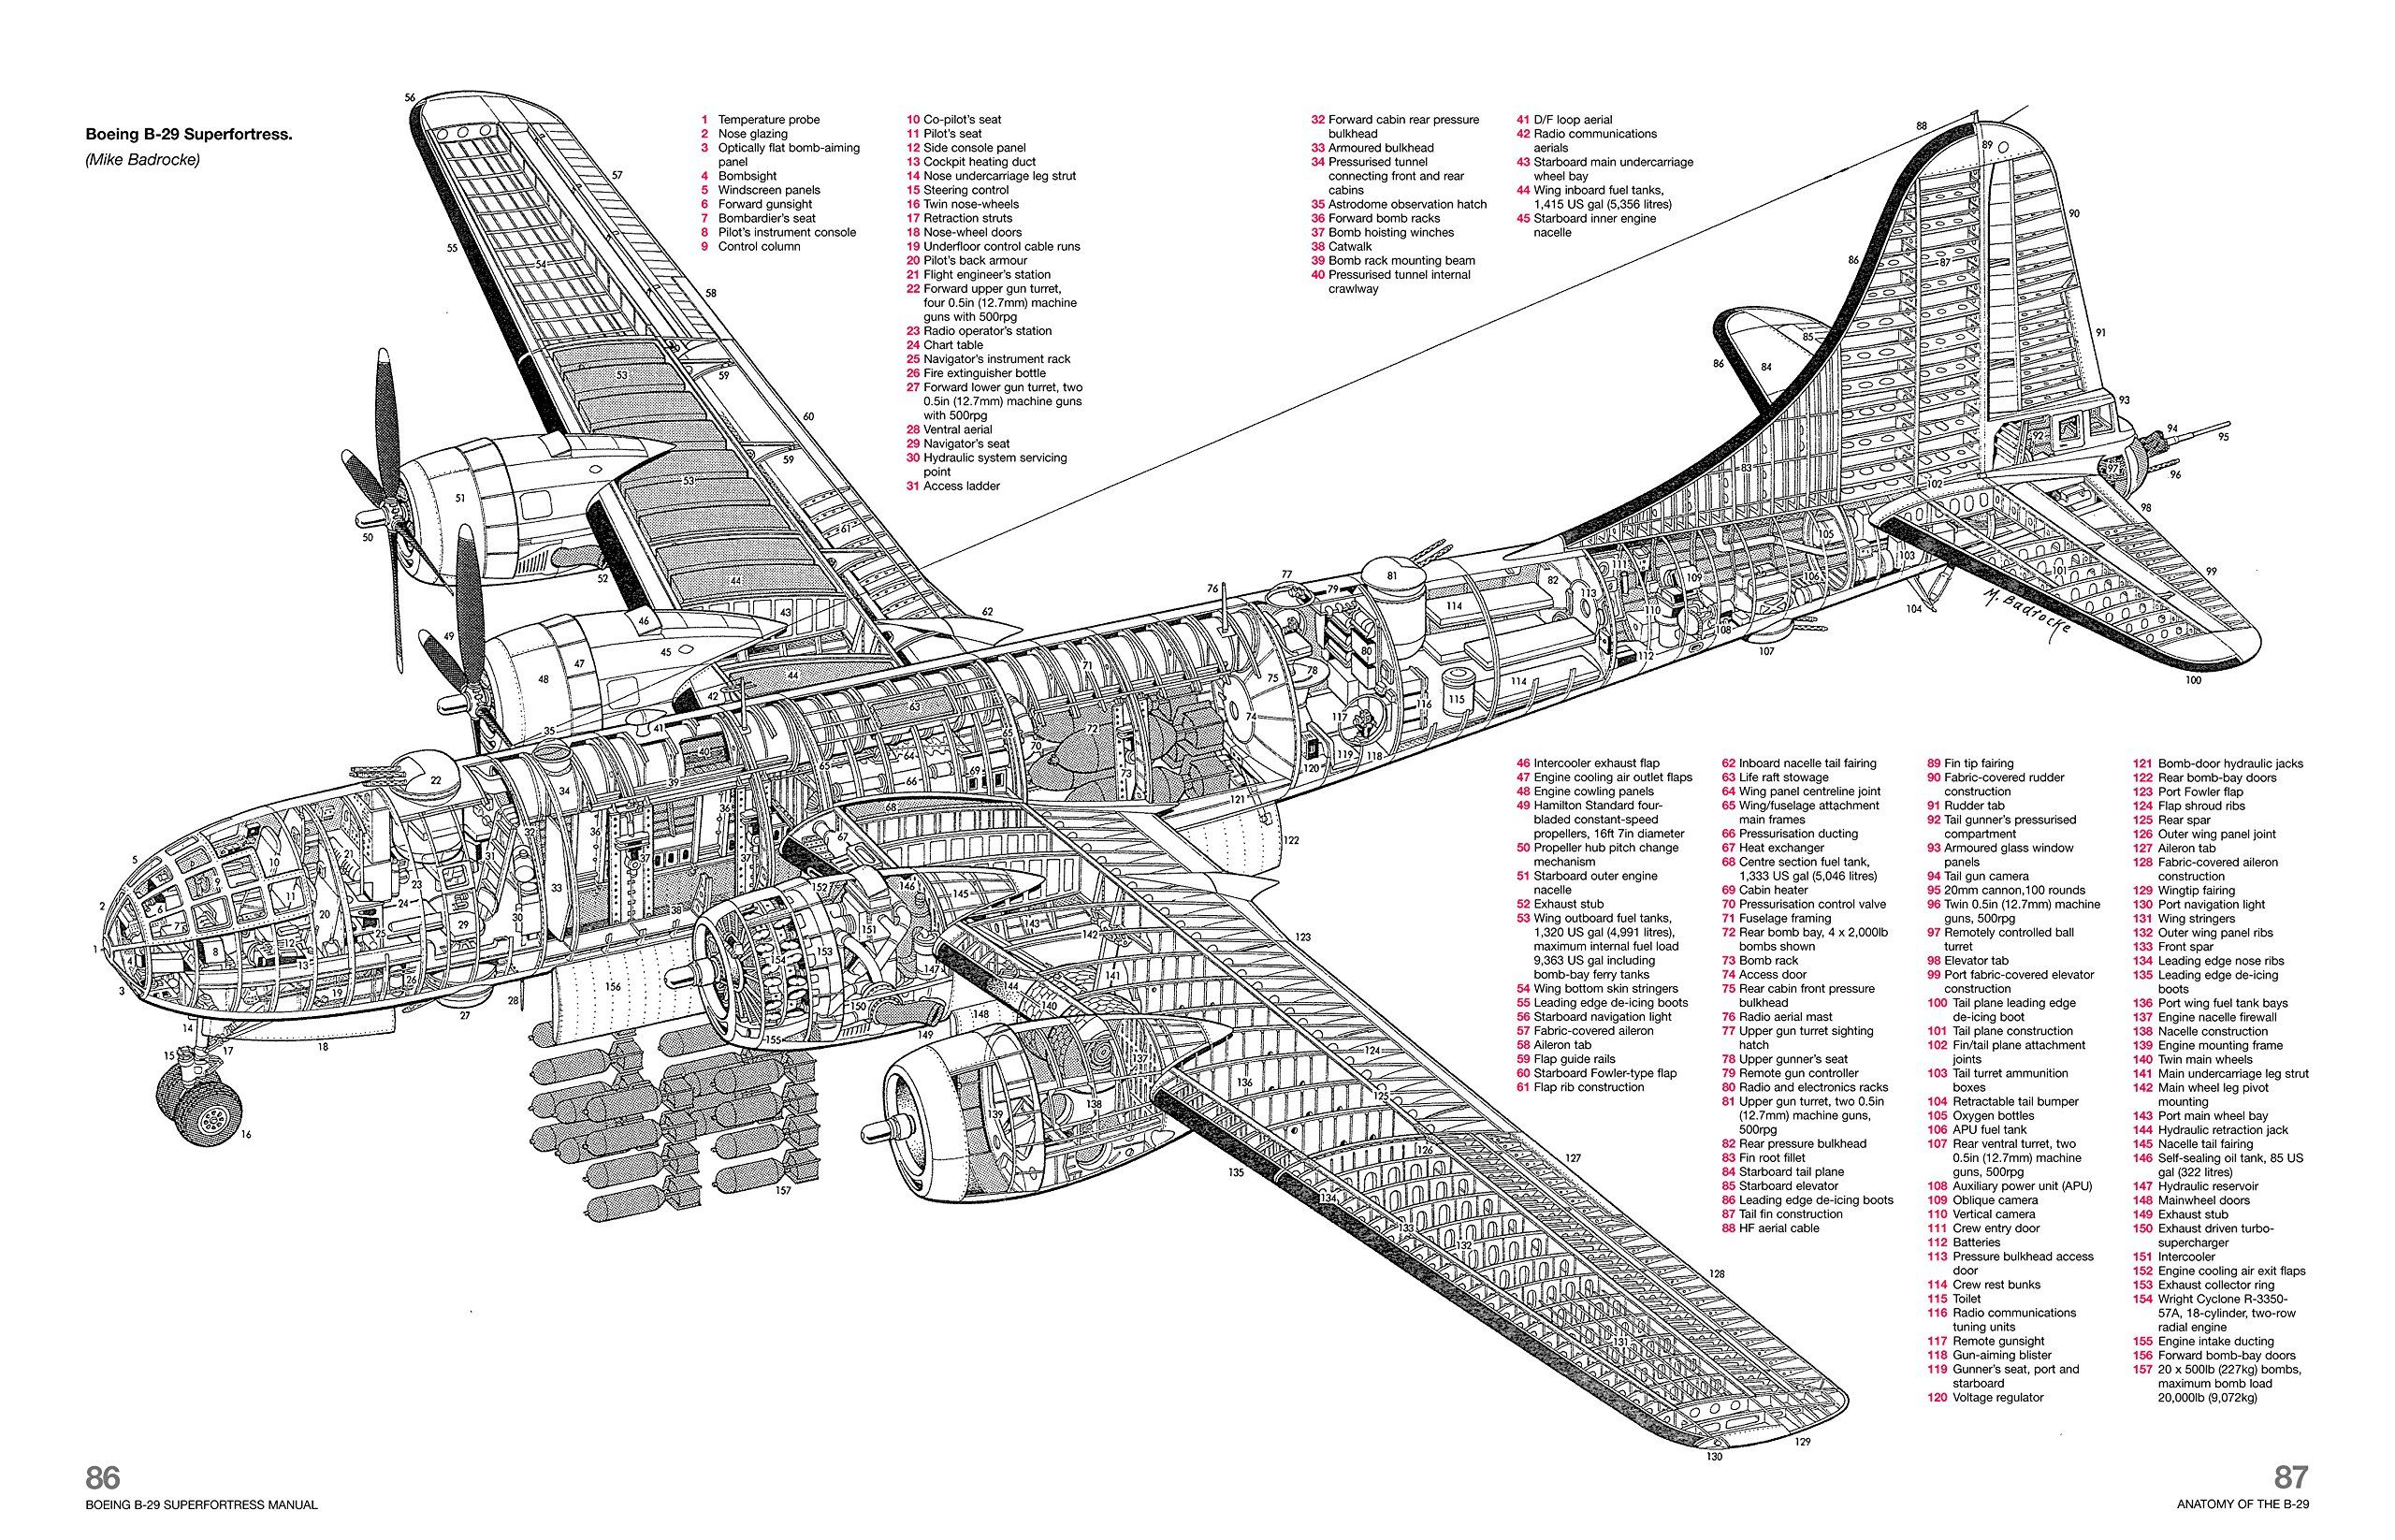 hight resolution of b 29 engine diagram wiring diagram namecutaways and diagrams on pinterest cutaway spacecraft and engine b